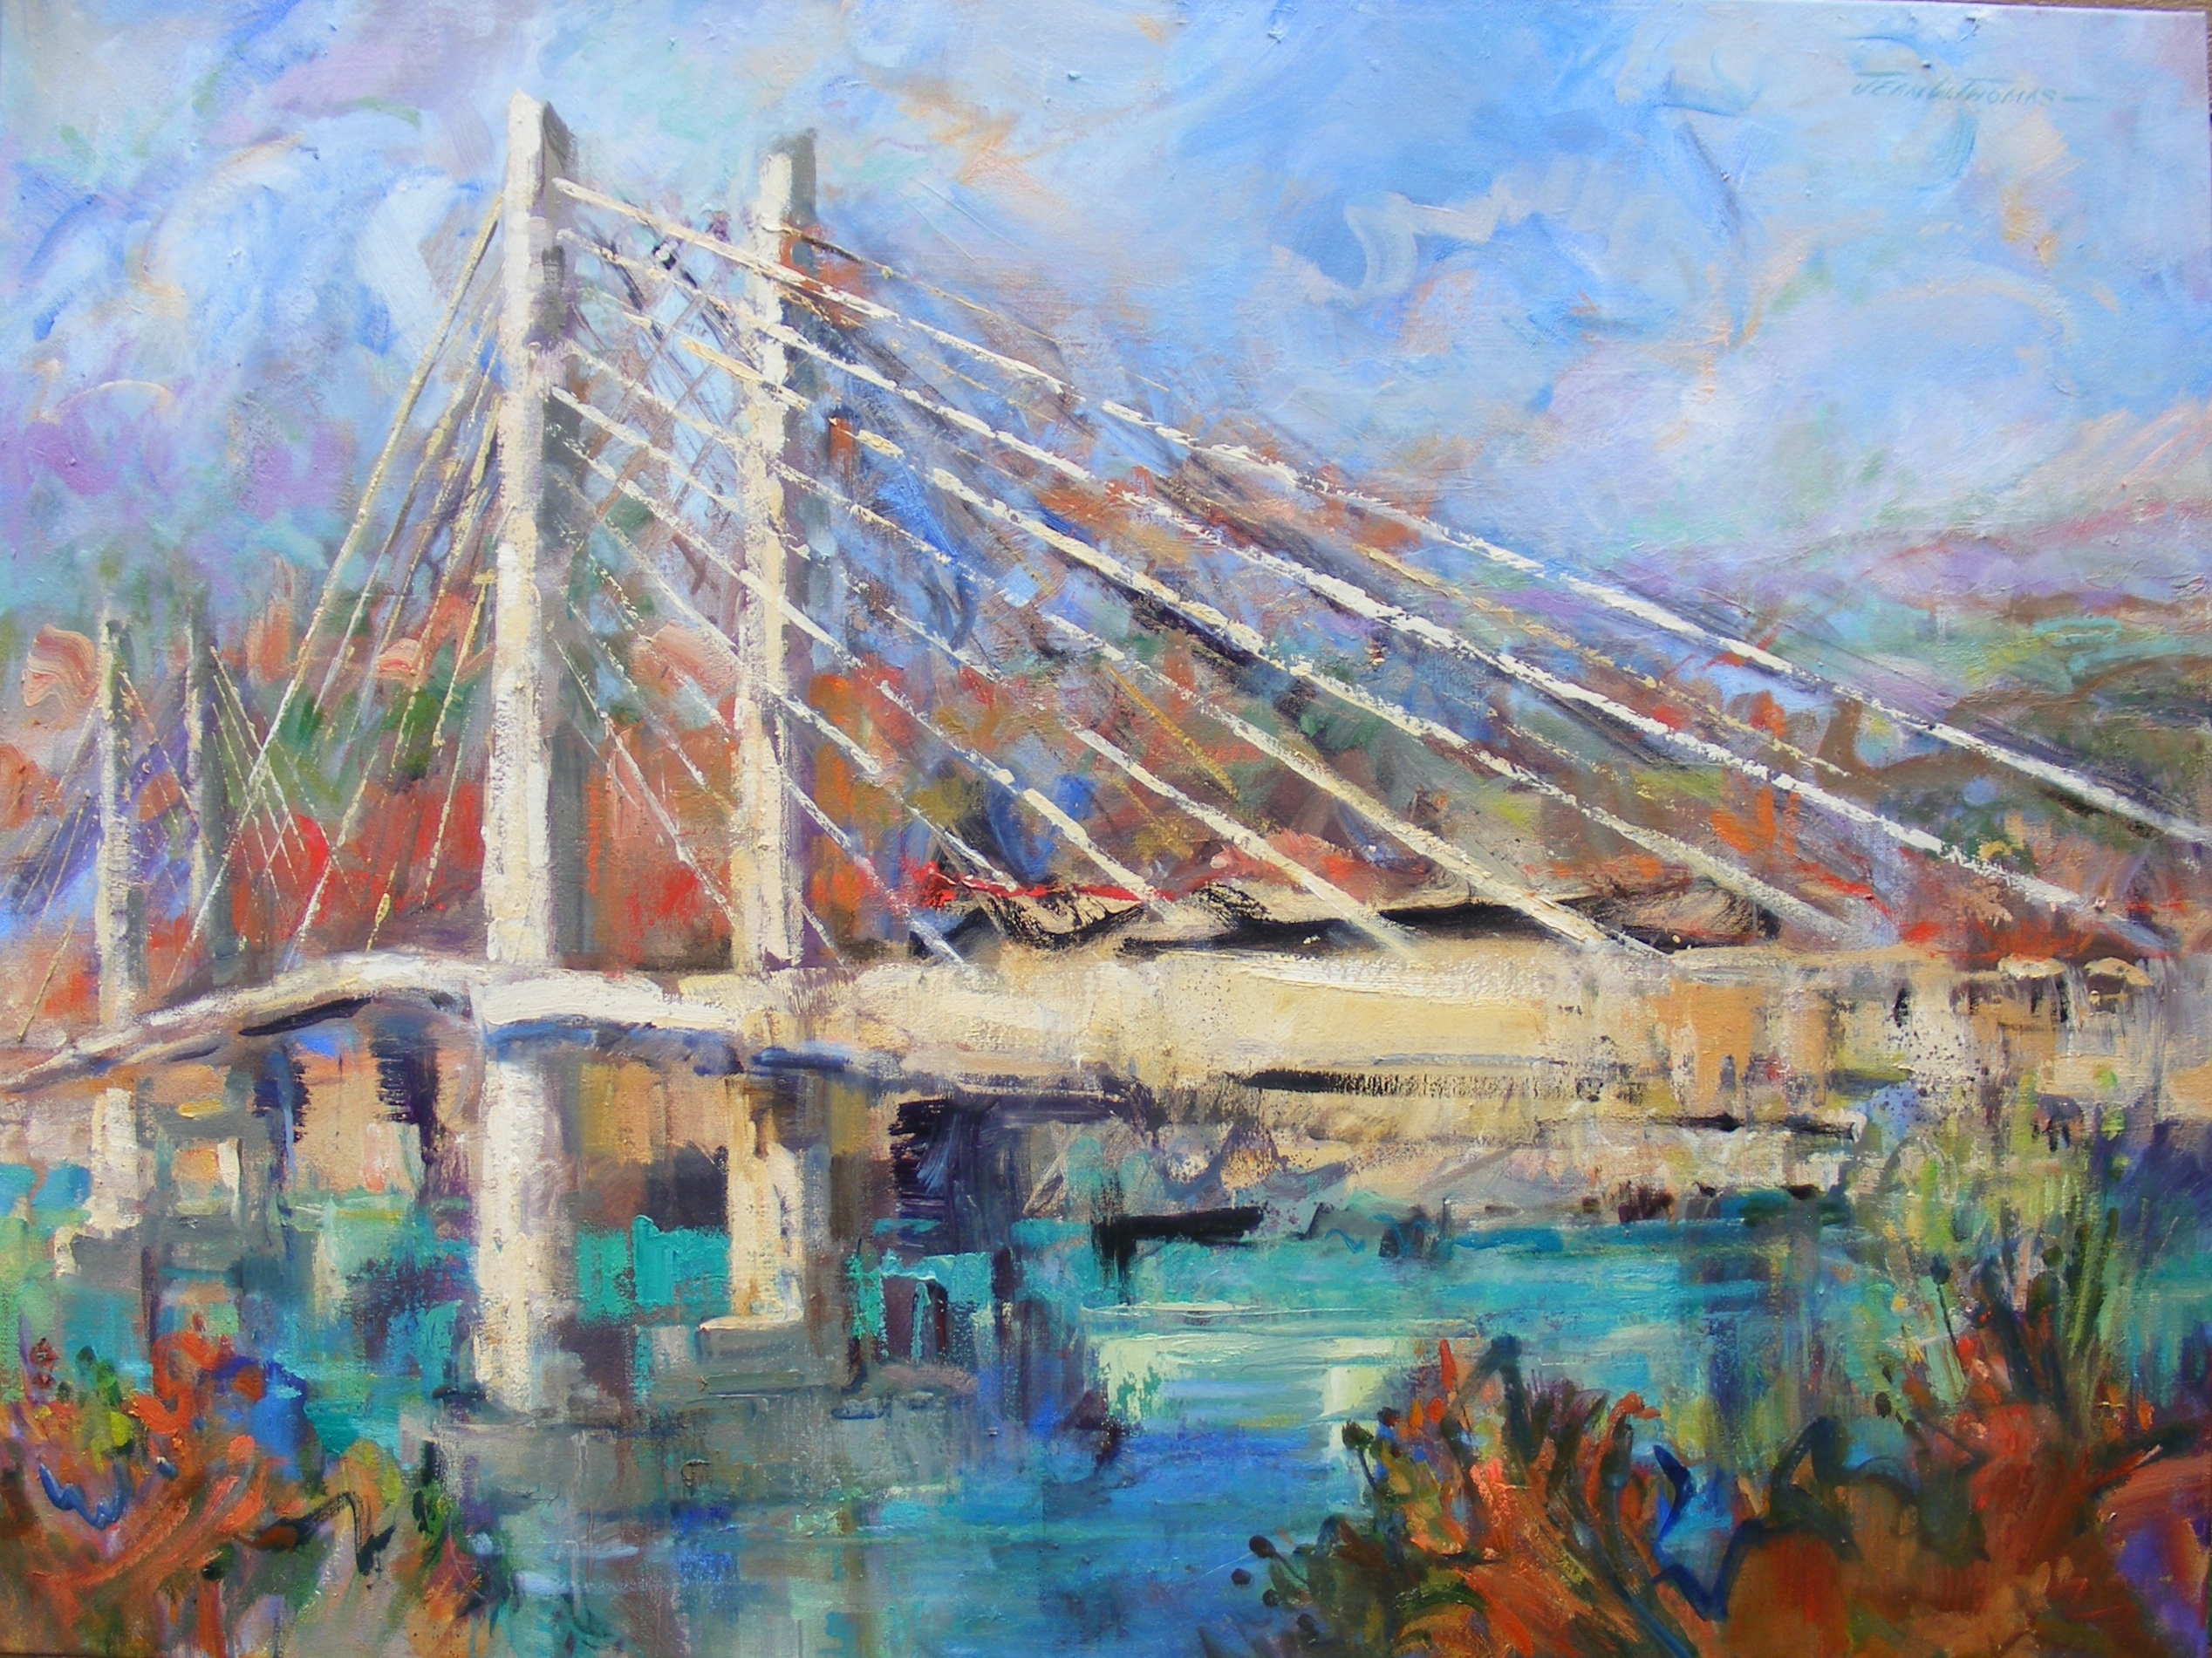 Jean Thomas, Tillikum Crossing, oil